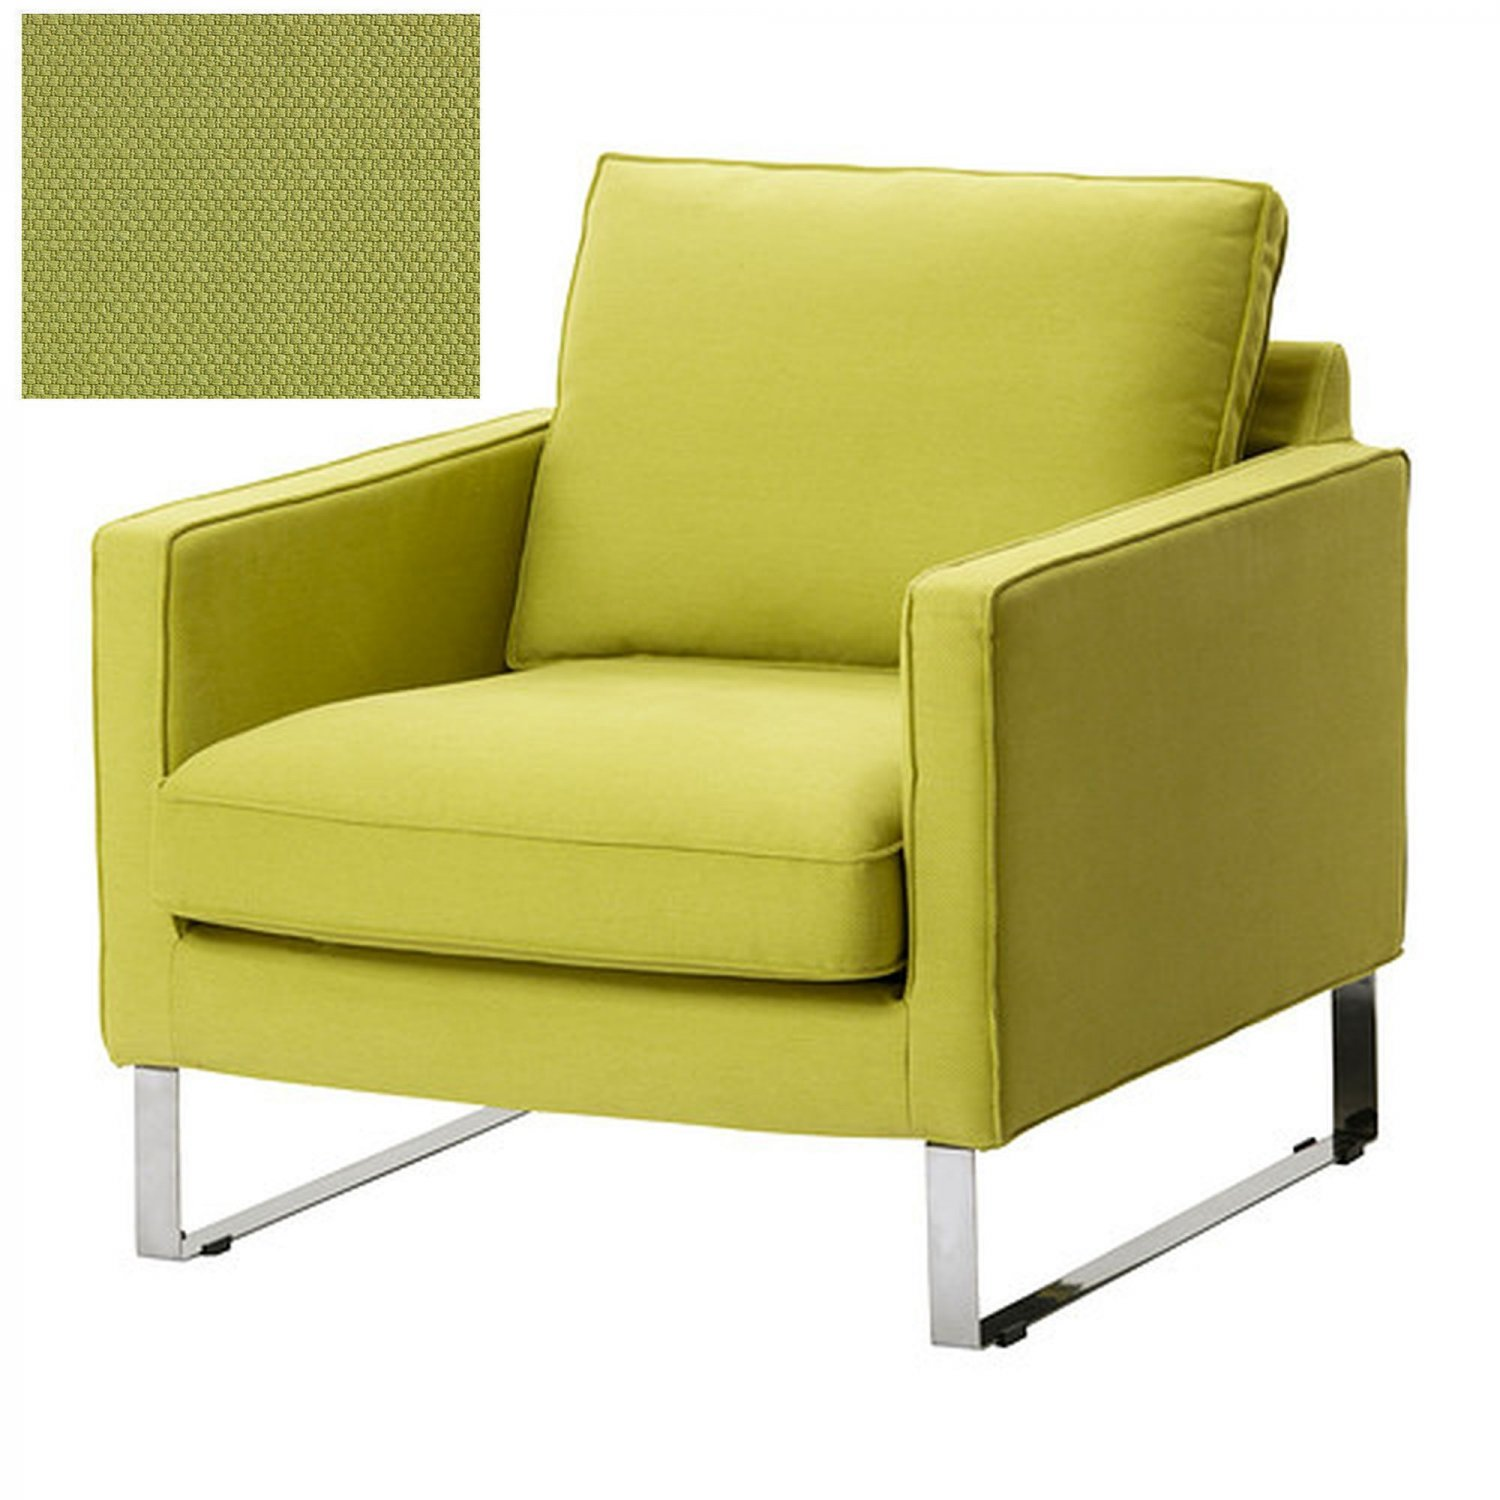 Green Chair Covers Ikea Mellby Armchair Slipcover Chair Cover Dansby Yellow